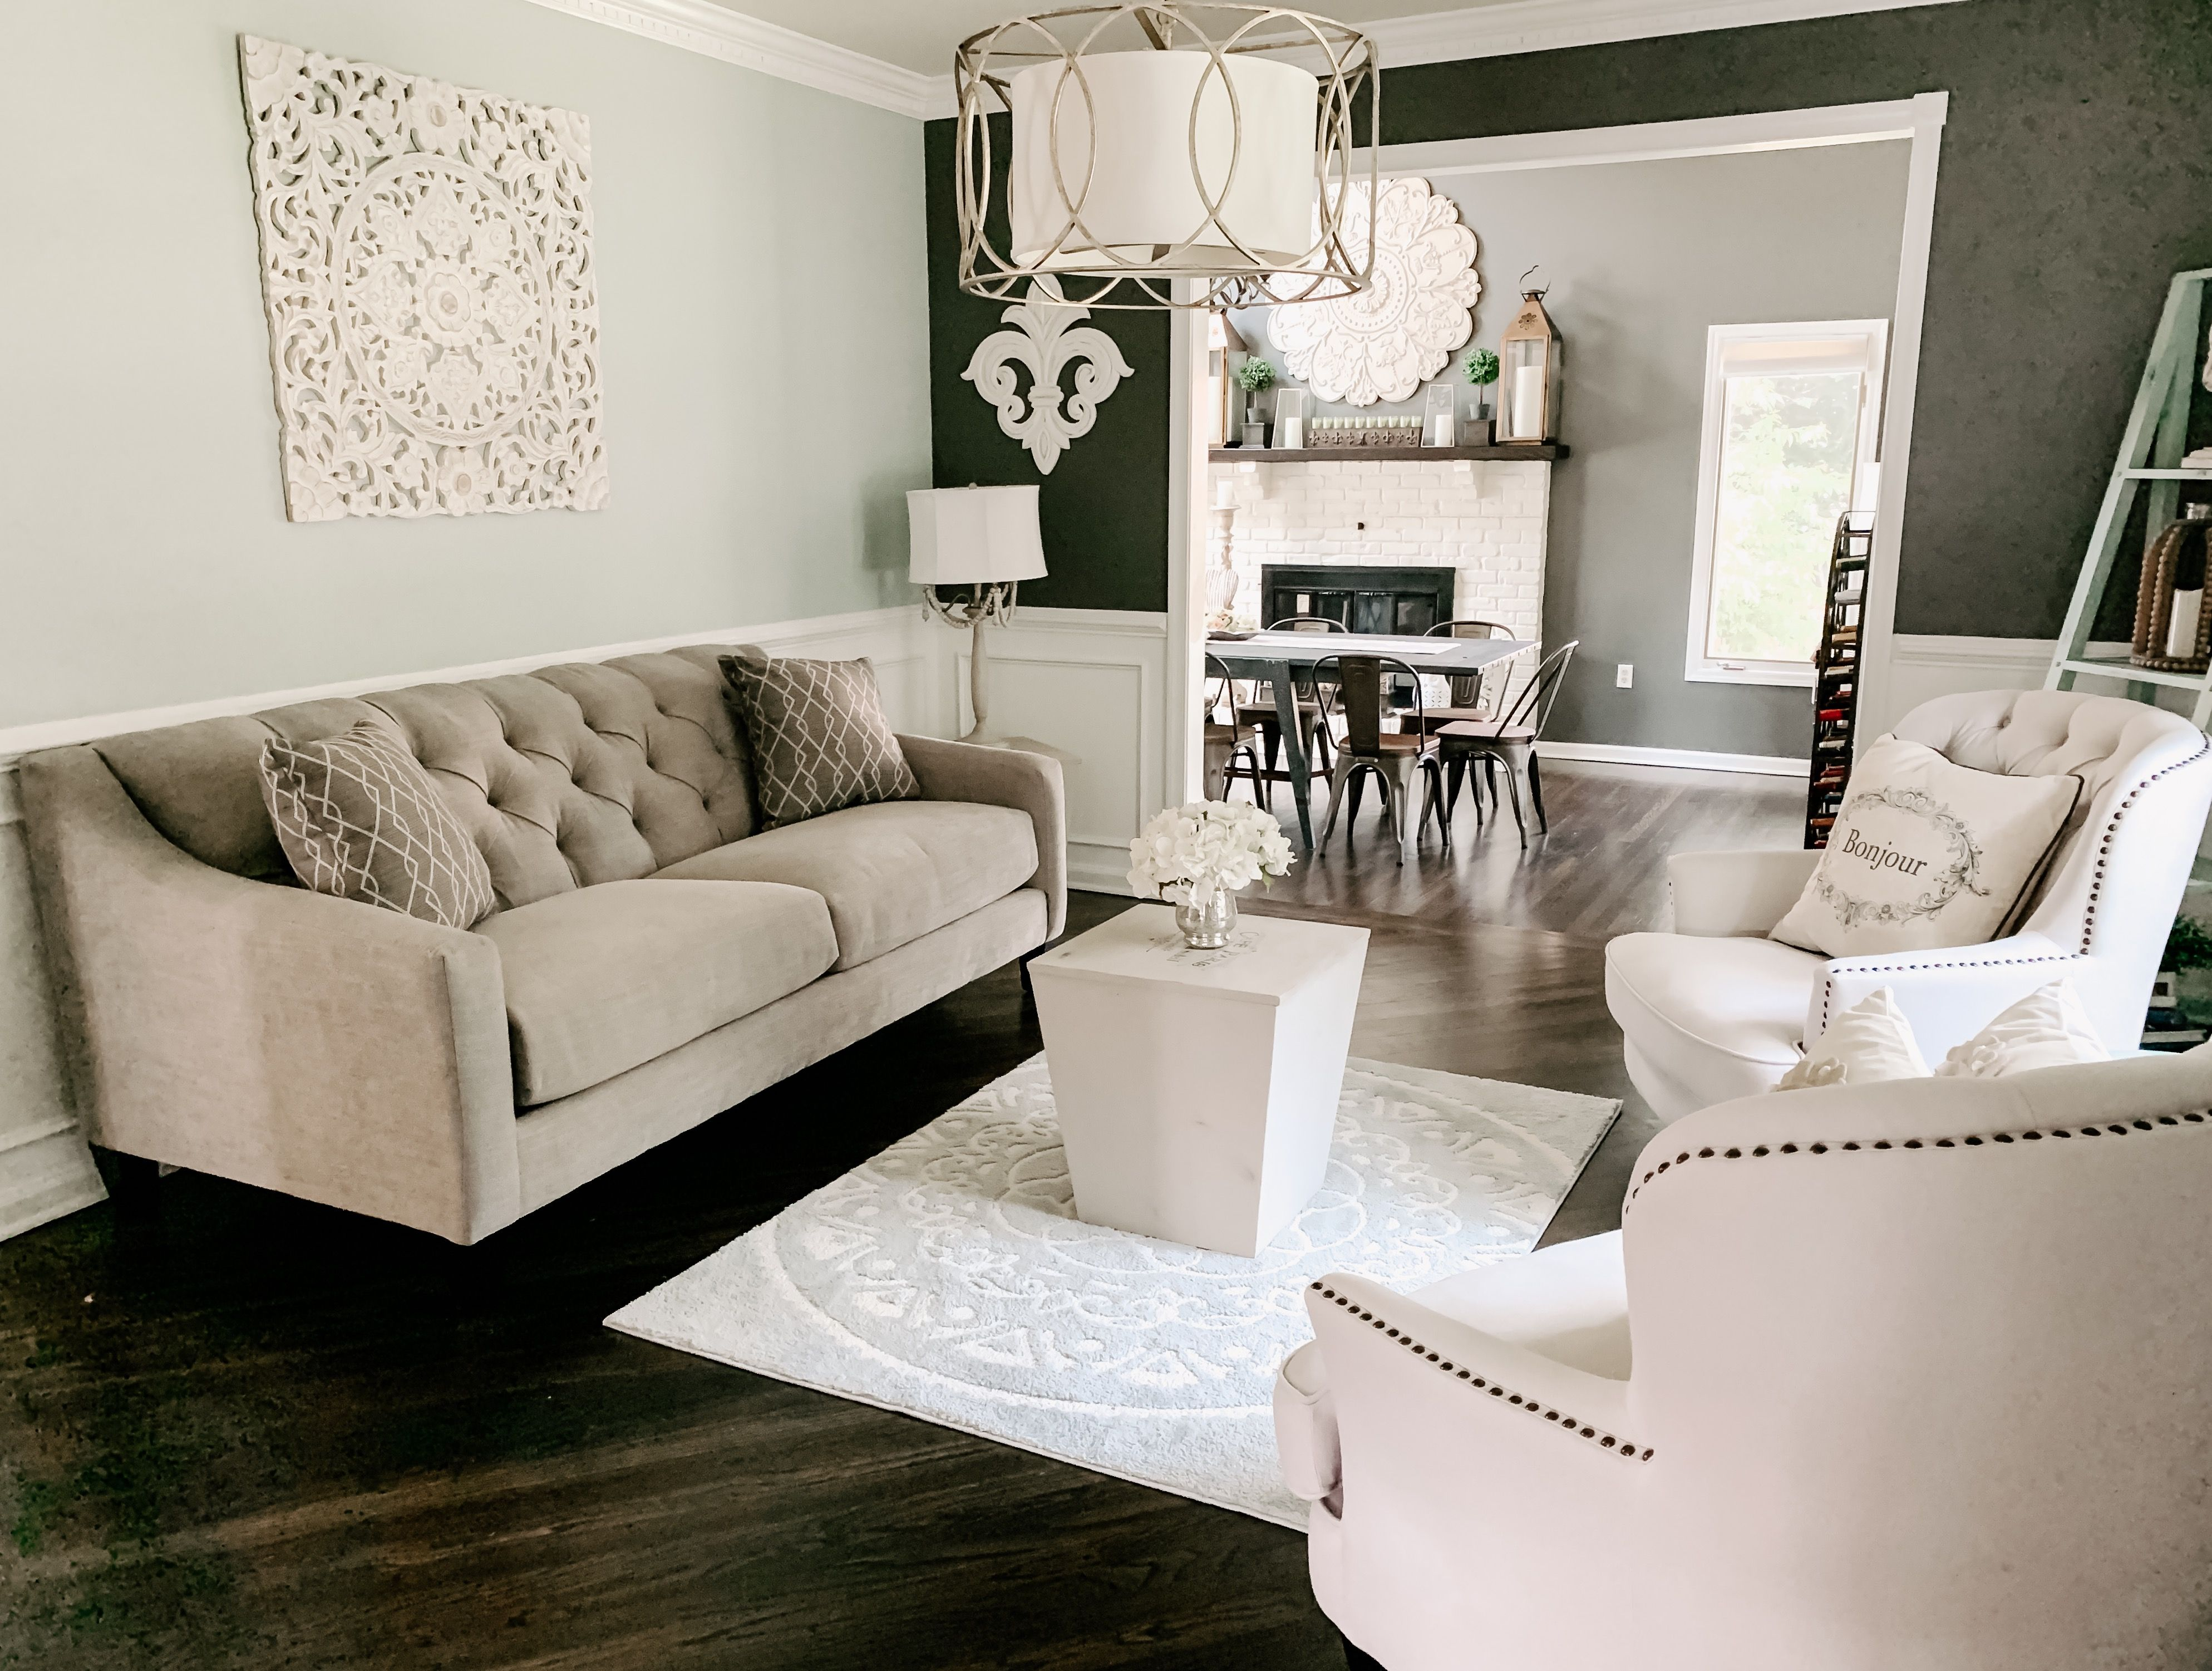 Pin by Raymour & Flanigan Furniture a on Shop the look